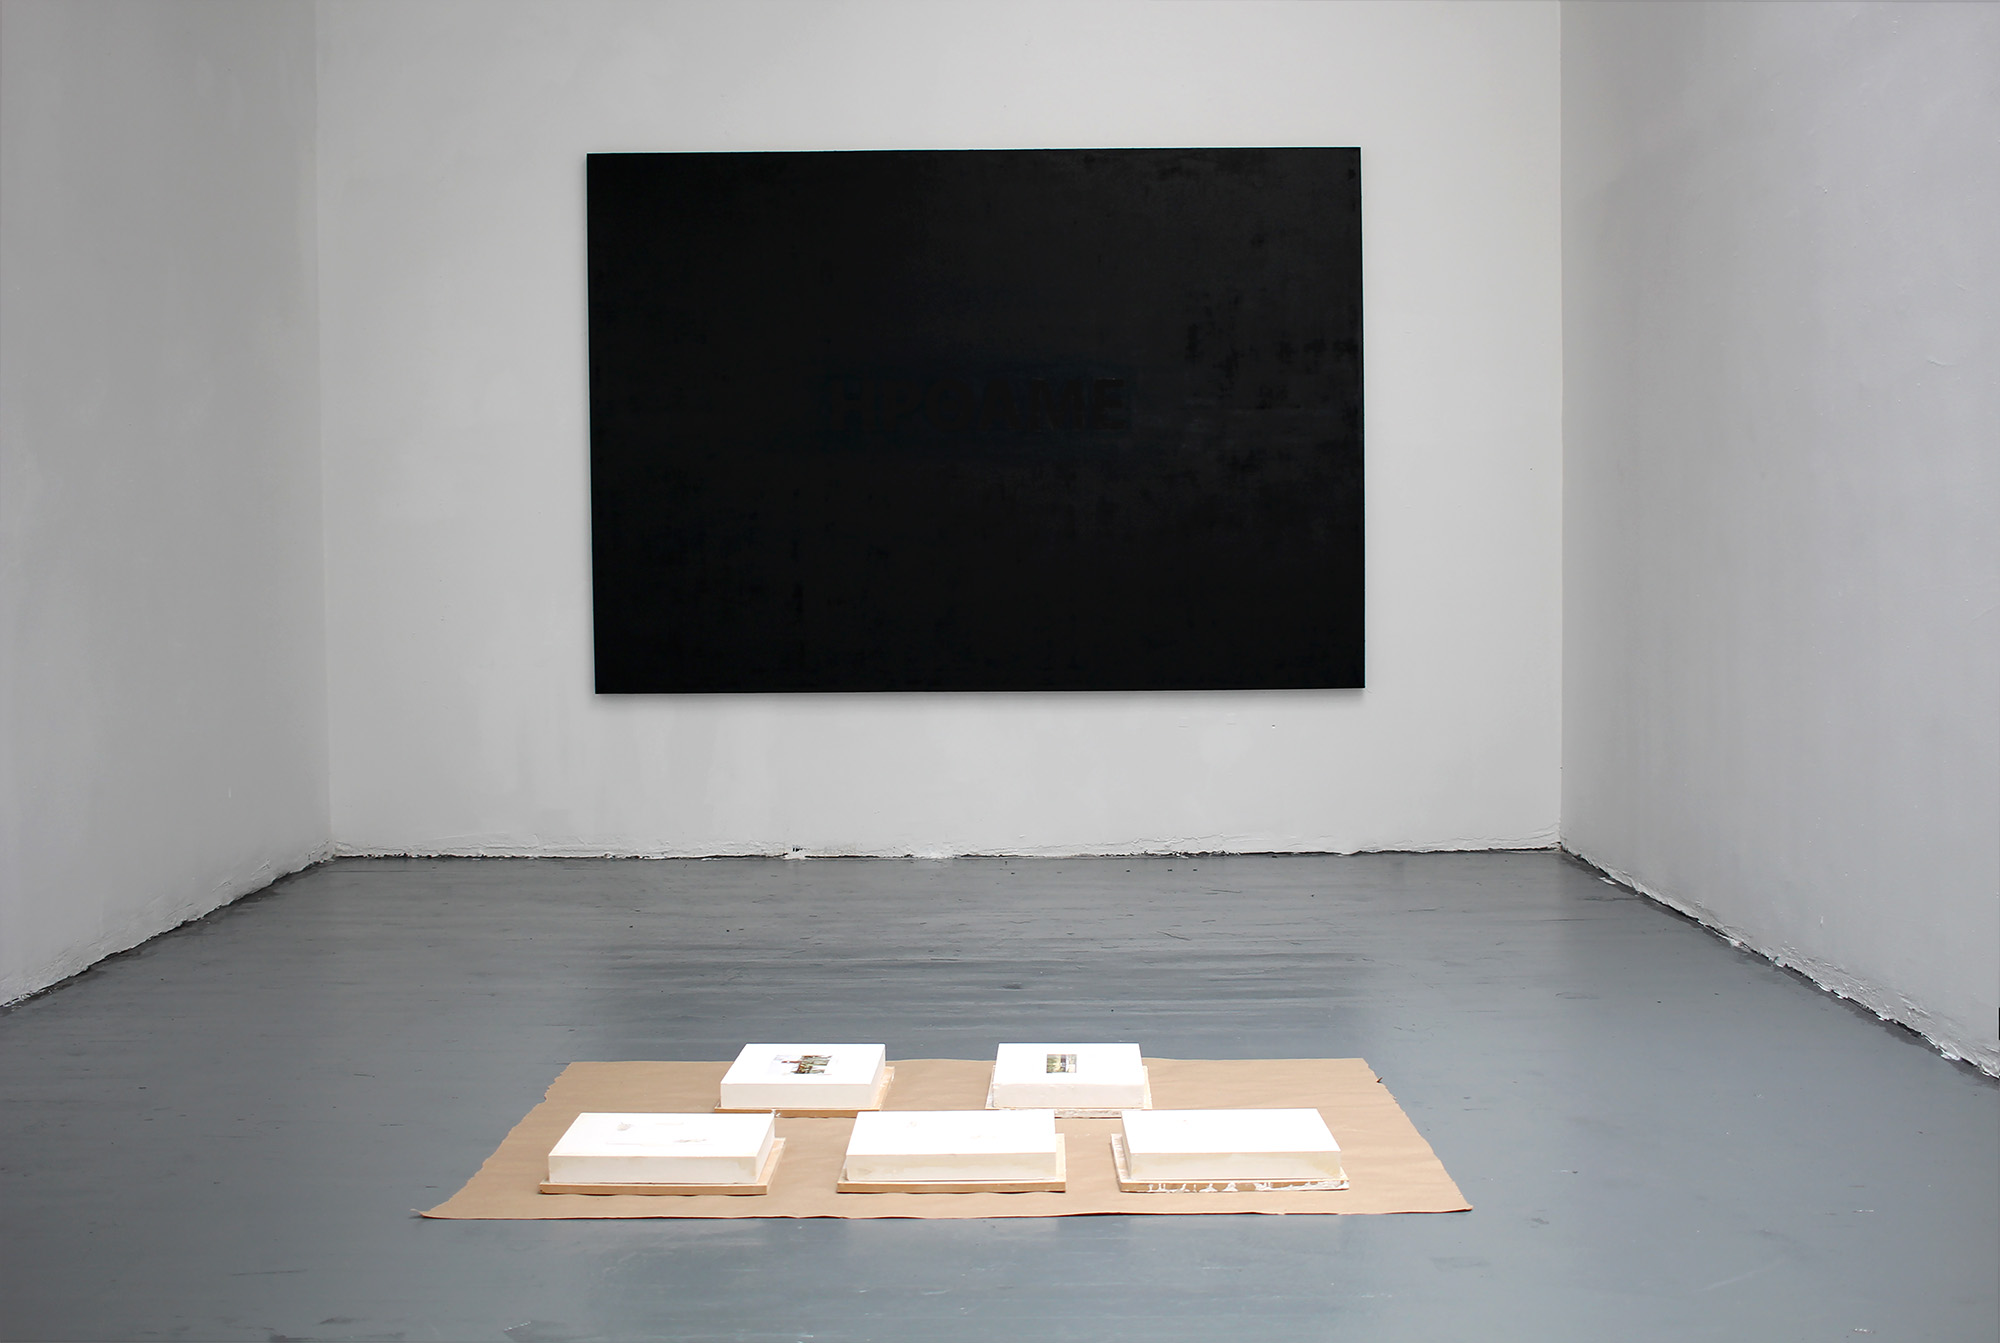 Irthame!, Study for The Structure of the Presentation of a Place, 2016, Oil on linen, Plaster, Mdf panels, Postcards, Masking tape, Craft paper, Installation view